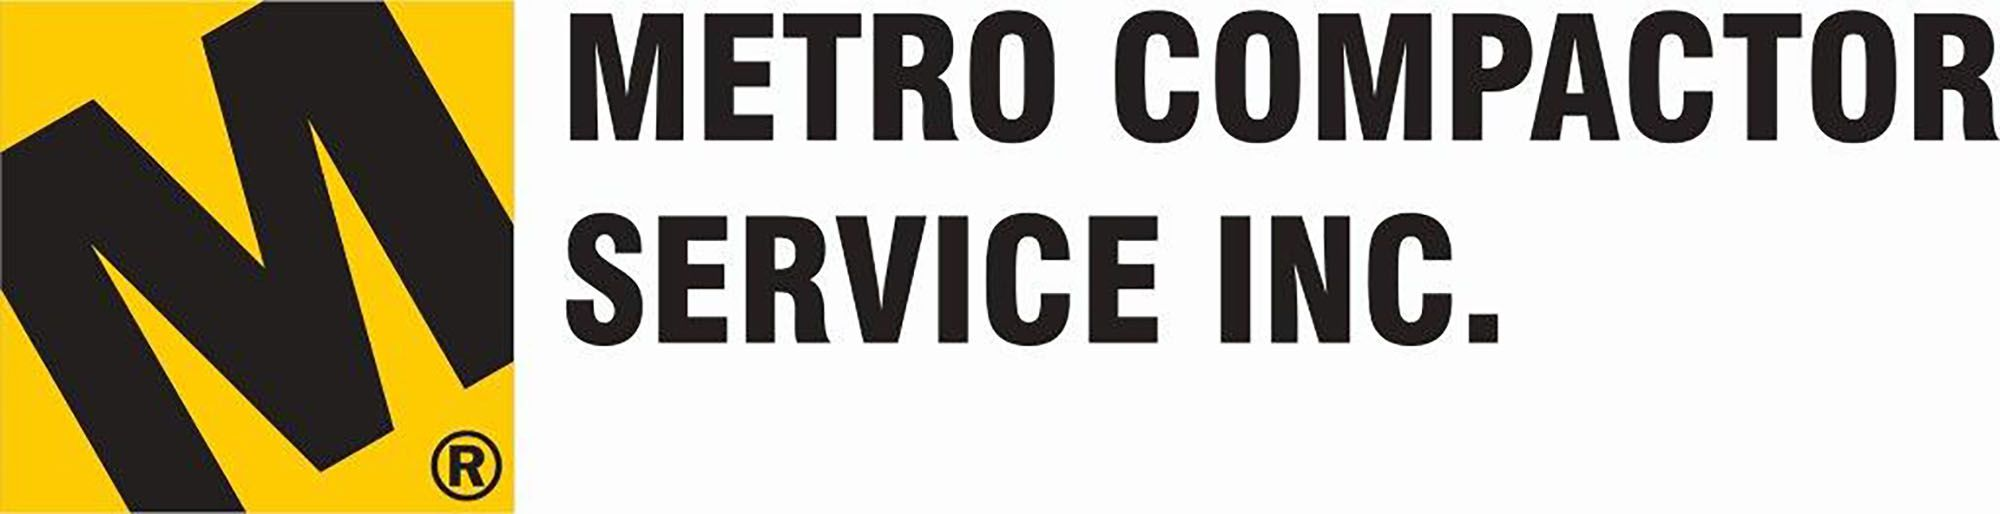 Metro Compactor Services Inc. Announces The Acquisition Of Begley Overhead  Doors Ltd